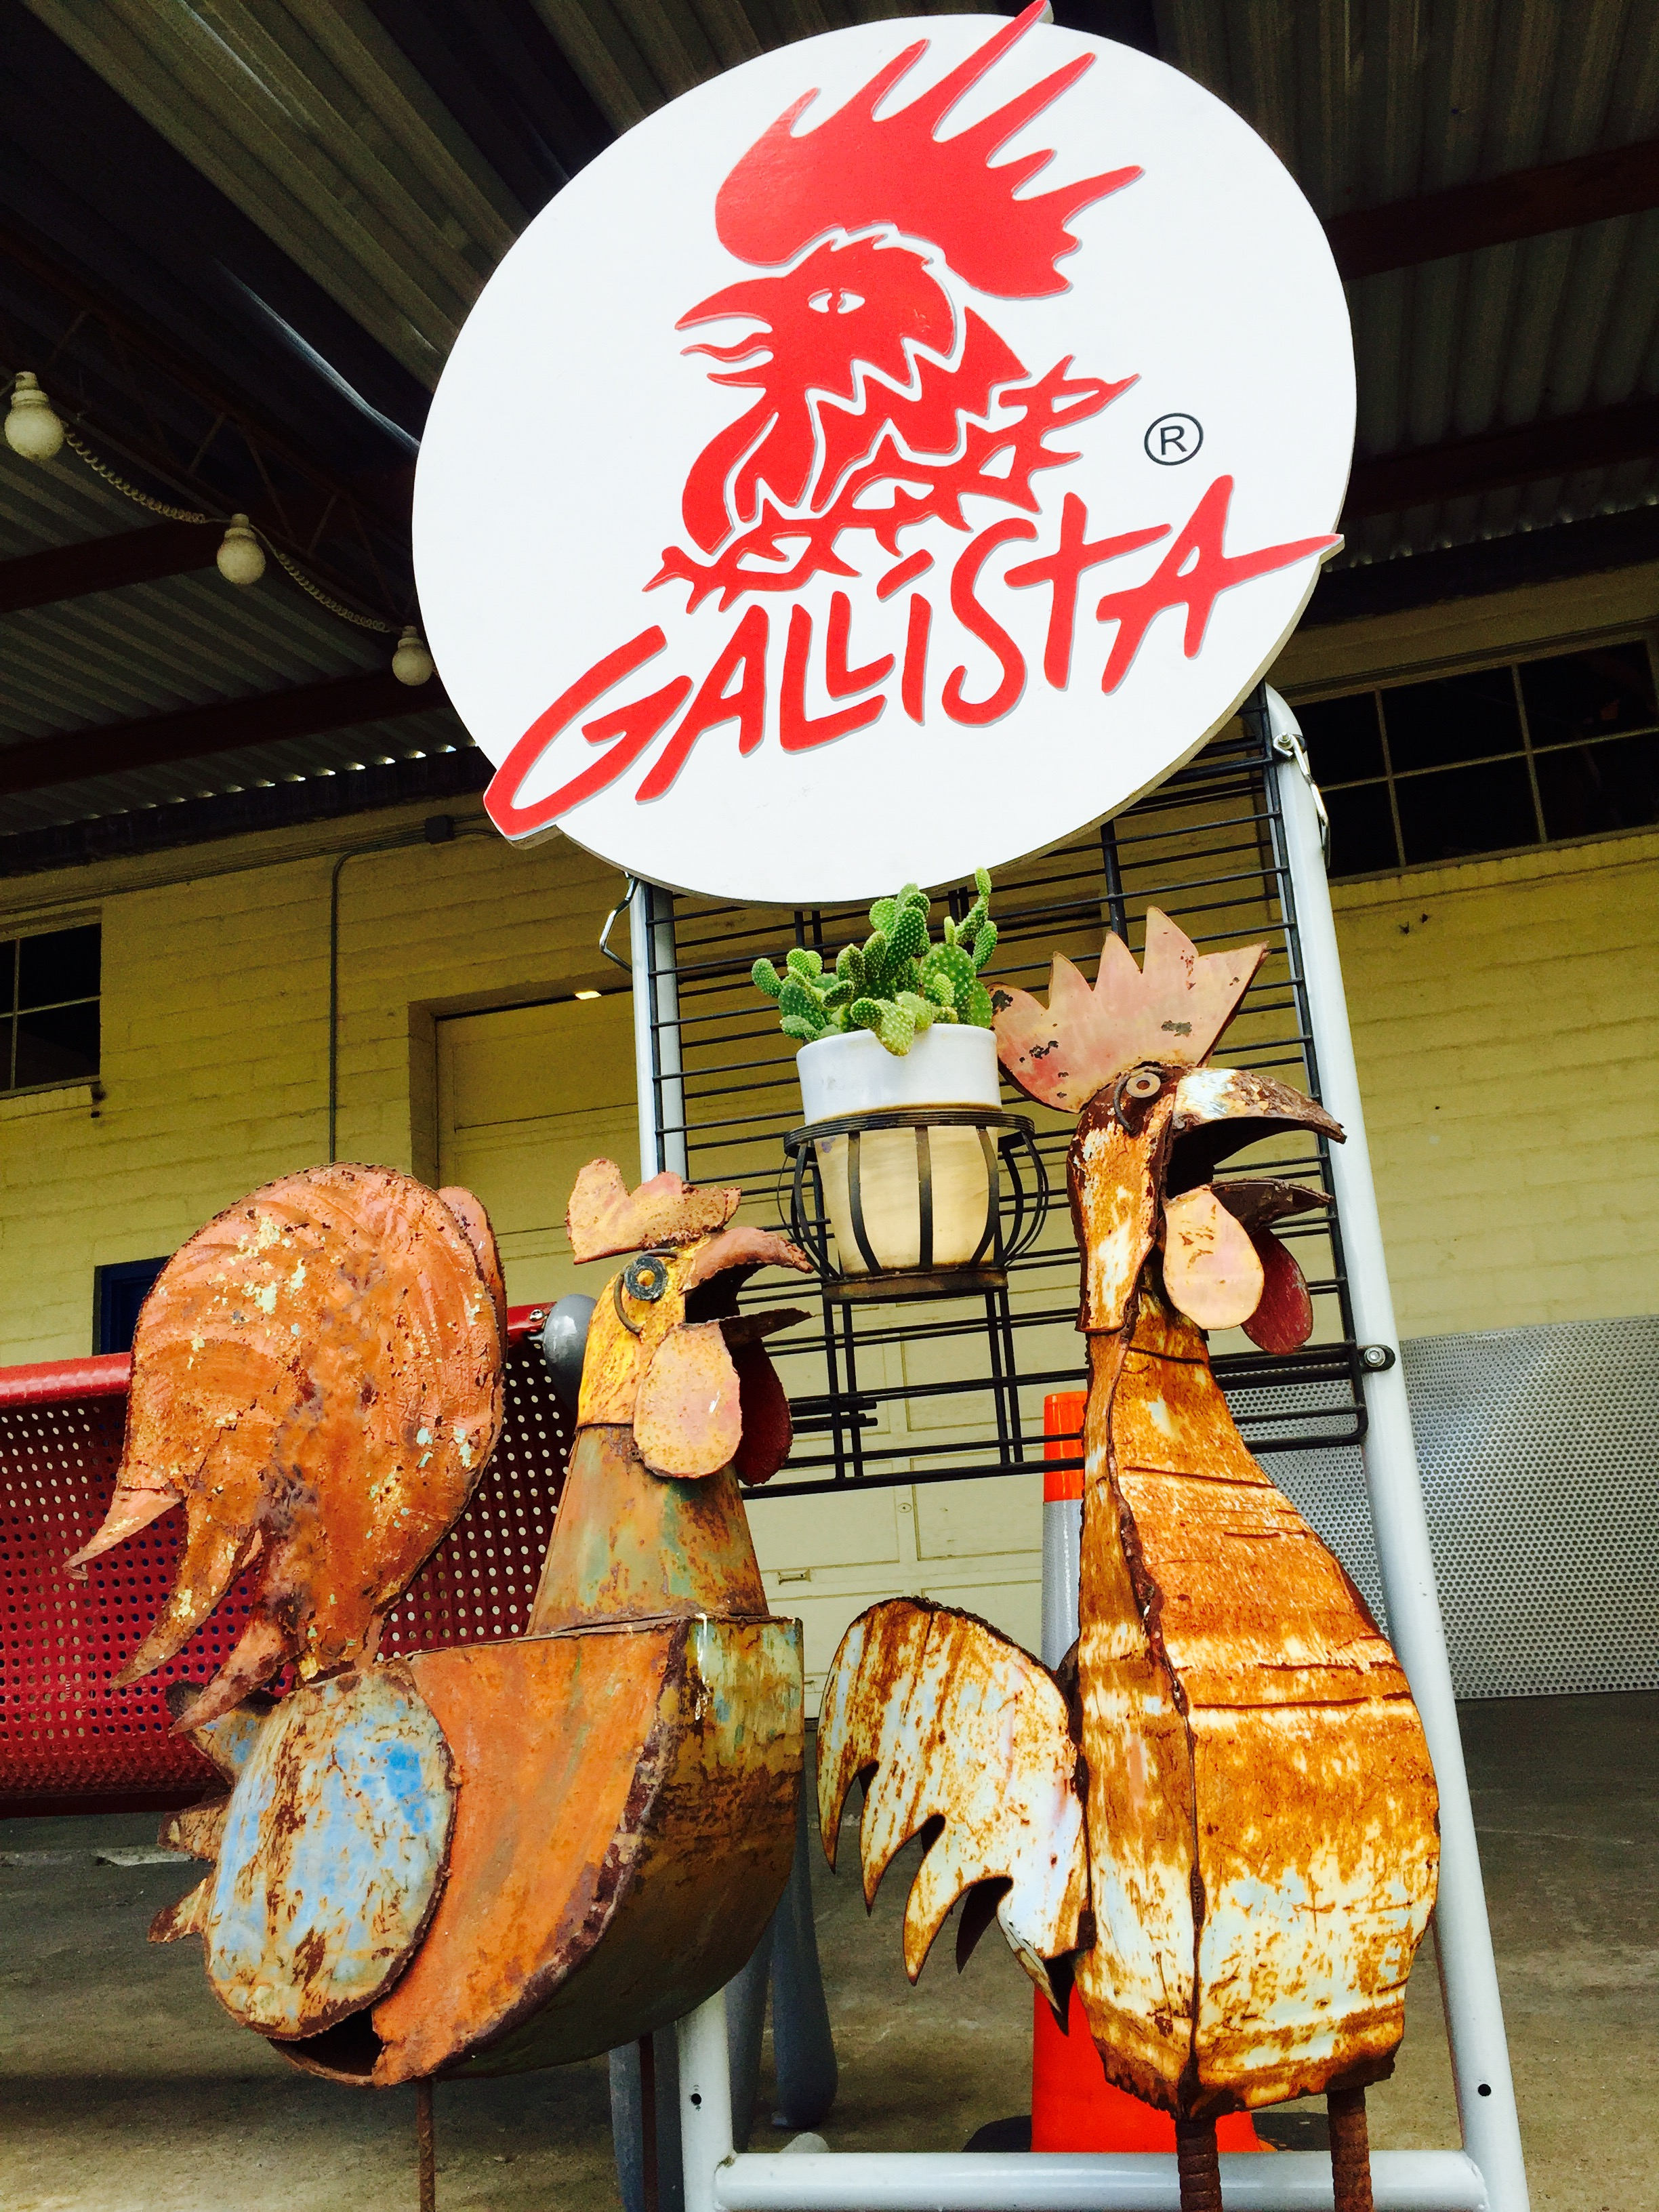 Gallista at Lone Star Studios